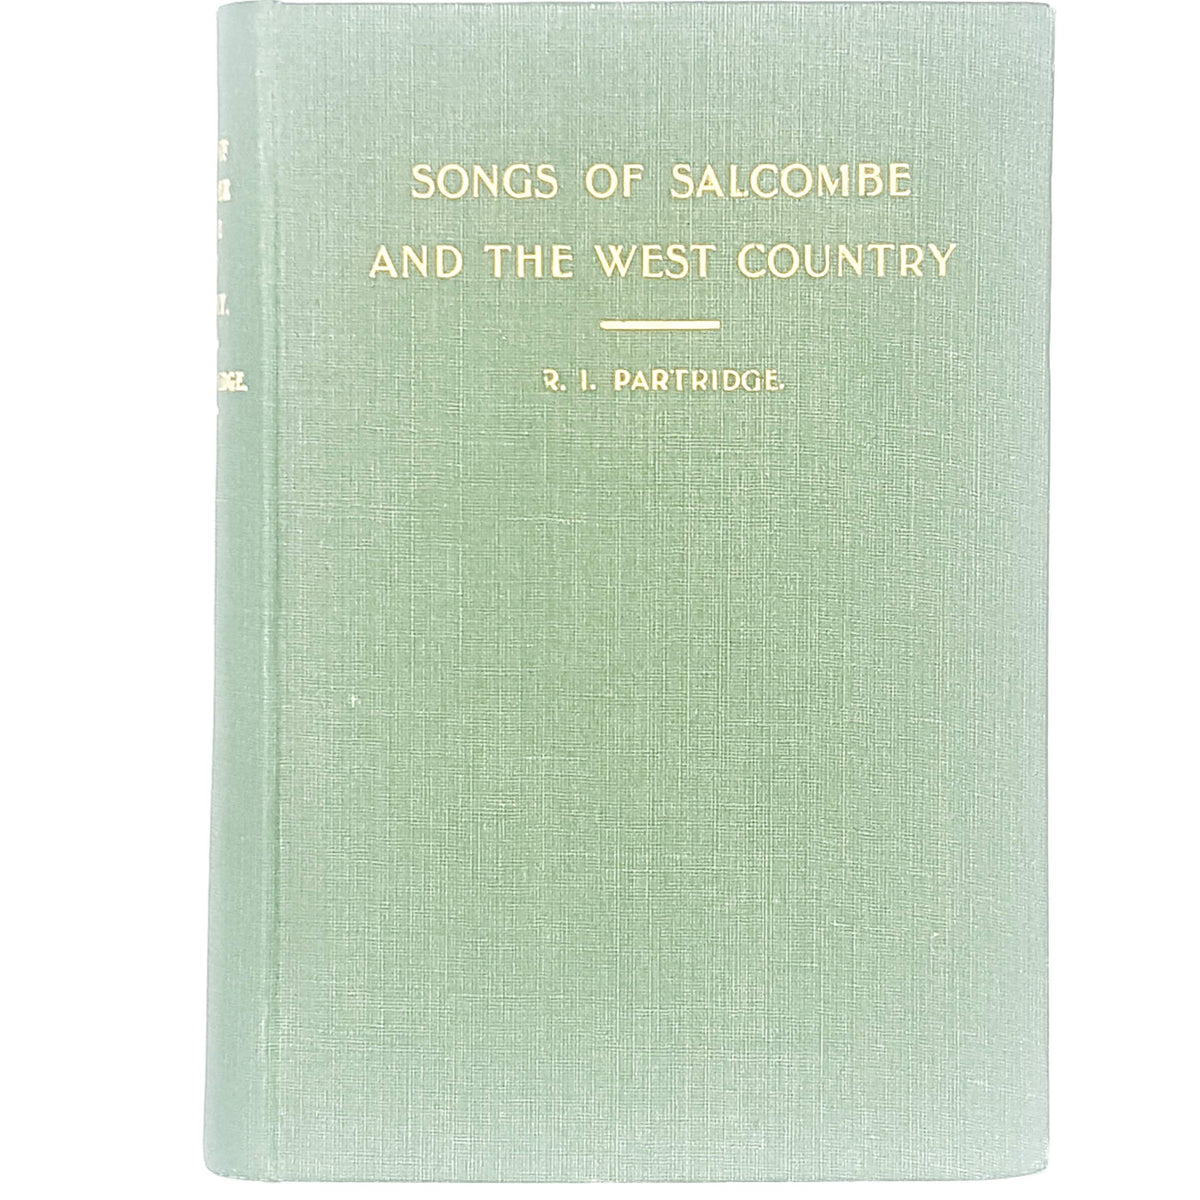 Songs of Salcombe and the West Country by R. I. Partridge 1930